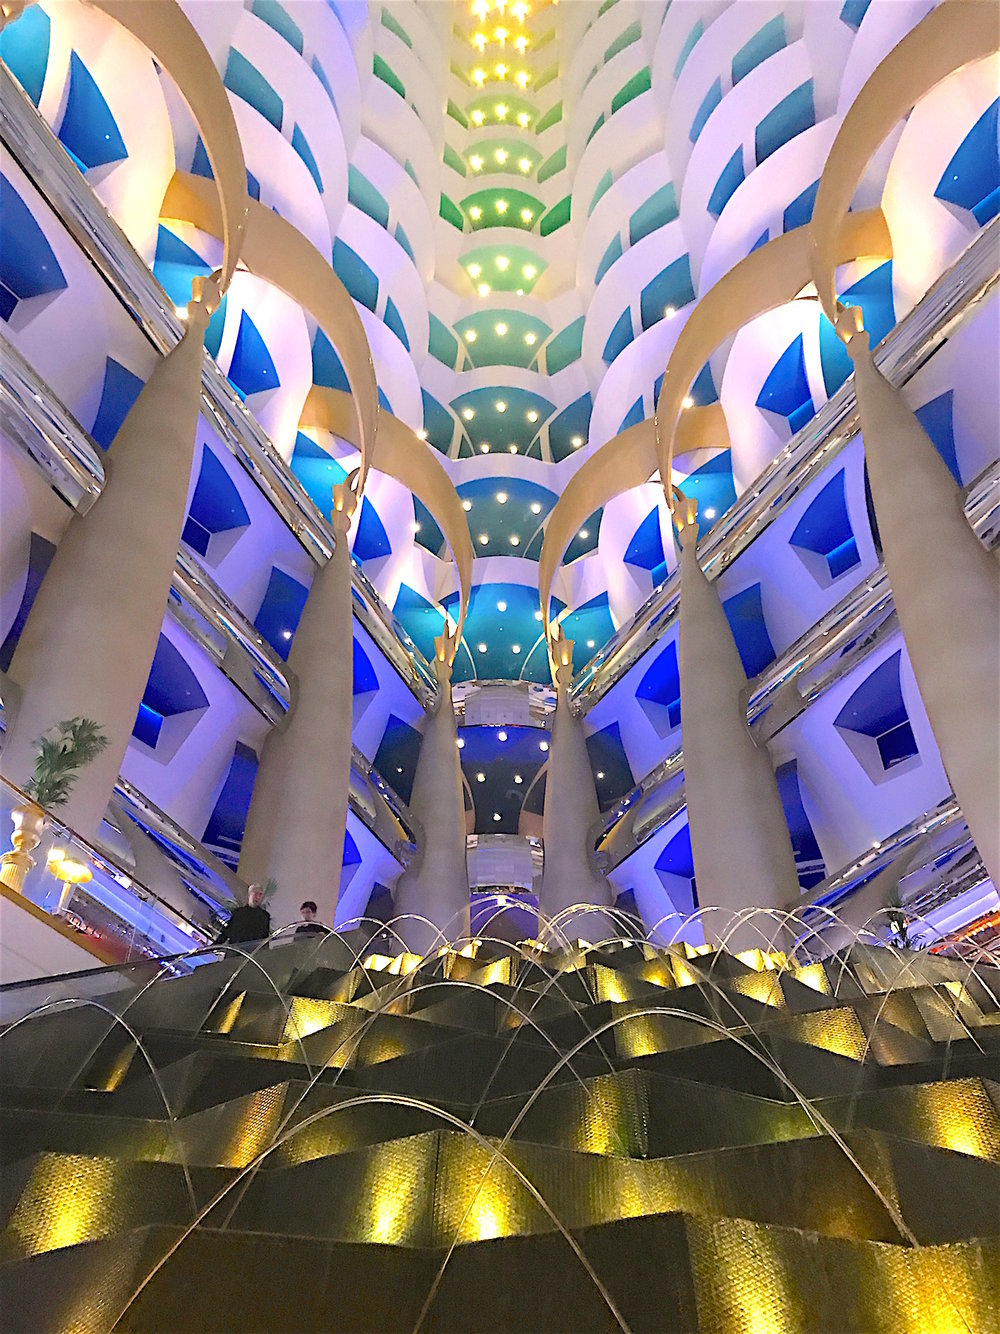 Stunning Lobby of The Hotel Burj Al Arab, Dubai